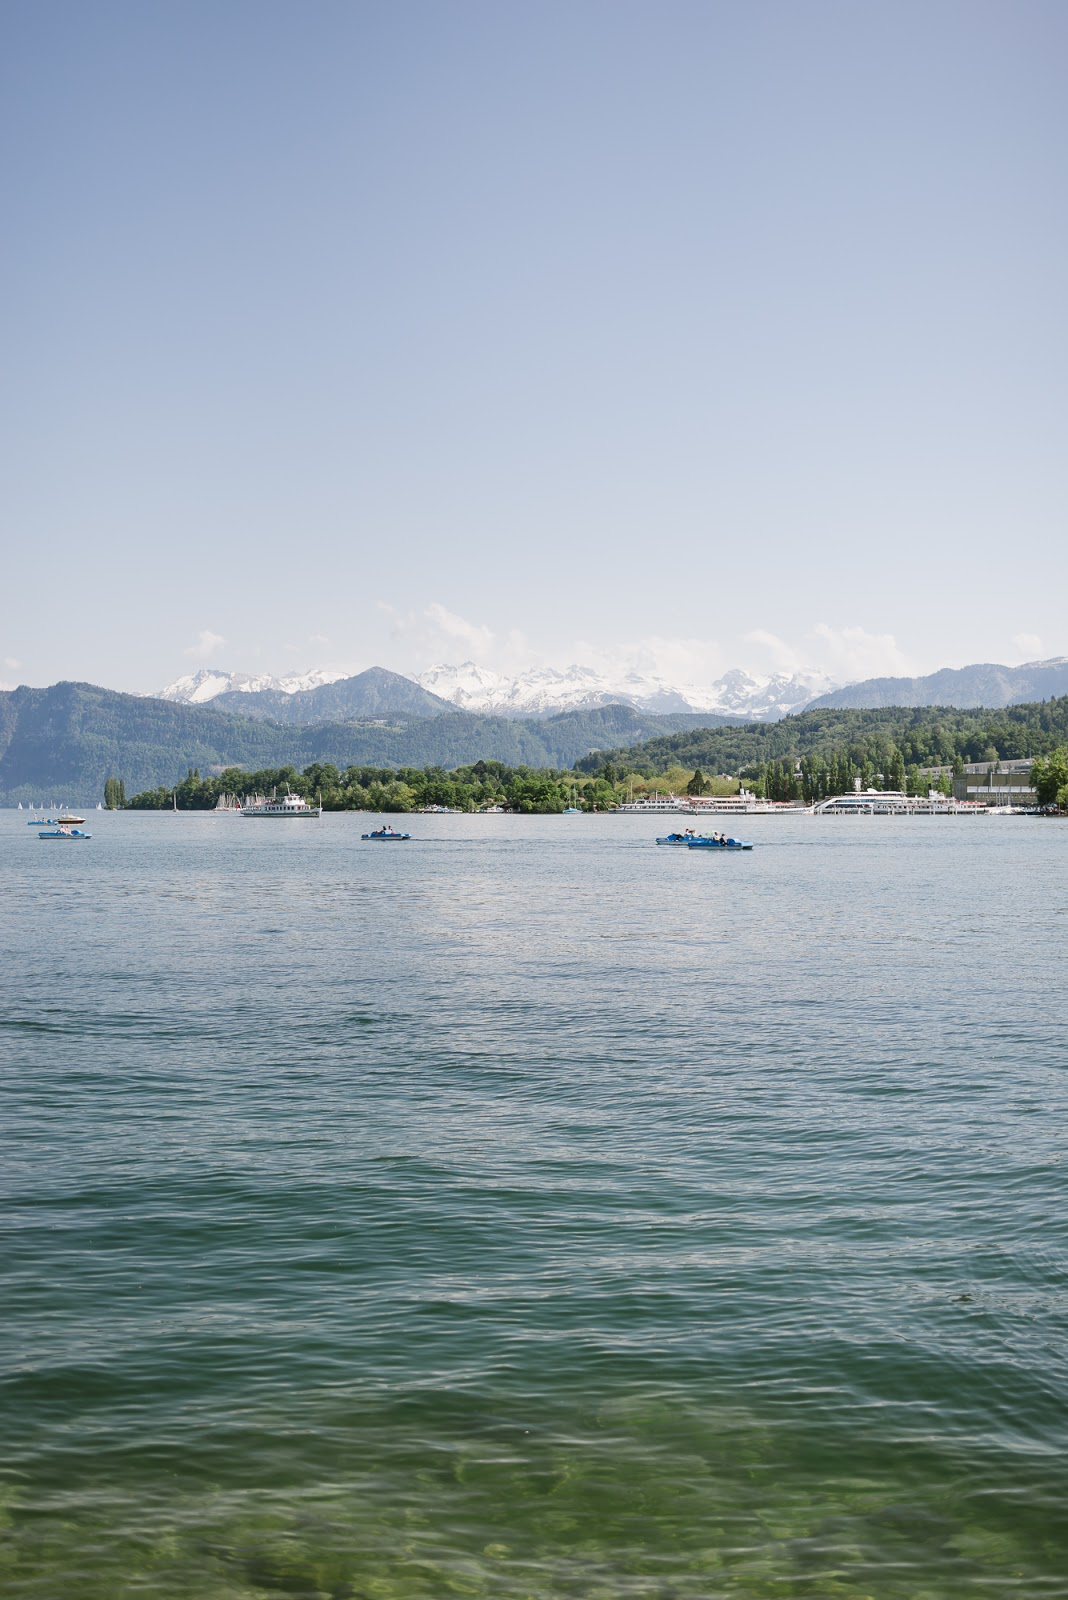 Beautyosaurus Lex-Alex Good-Lifestyle-Travel-TravelBloggers-Lbloggers-Lucerne-Switzerland-Beer-Summer-lion of Lucerne-chapel bridge-Kapellbrücke-Wirtshaus Galliker-Reuss River-Luzern-Lucerne Travel Guide